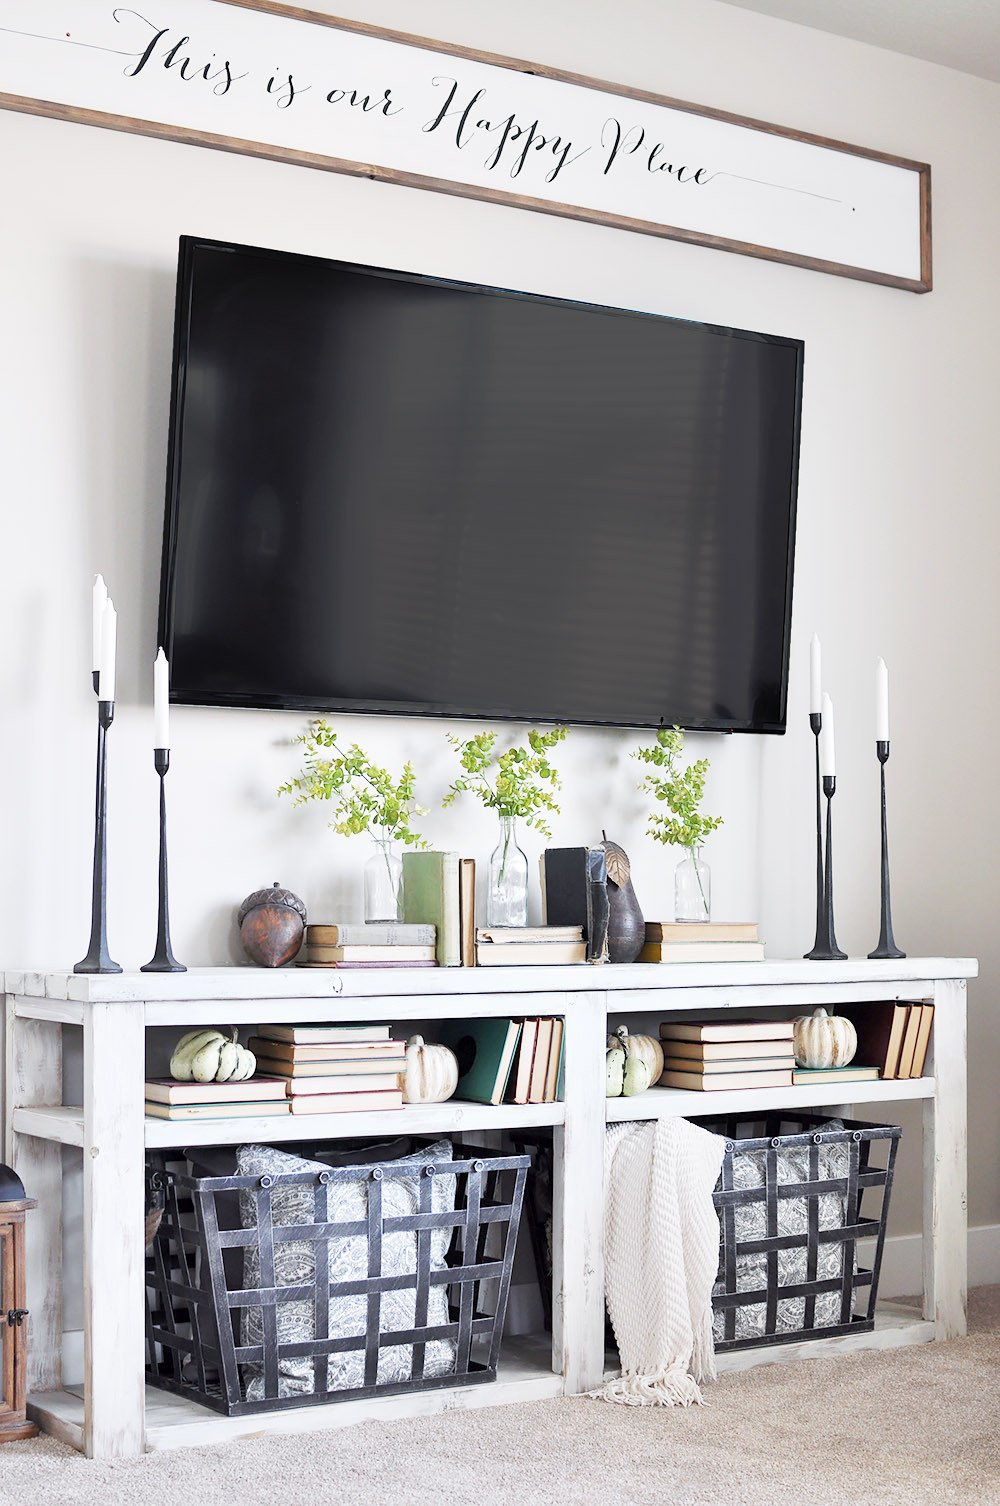 Decor Ideas for Tv Wall Awesome What's New In Fixer Upper Farmhouse Home Decor Volume 30 the Cottage Market